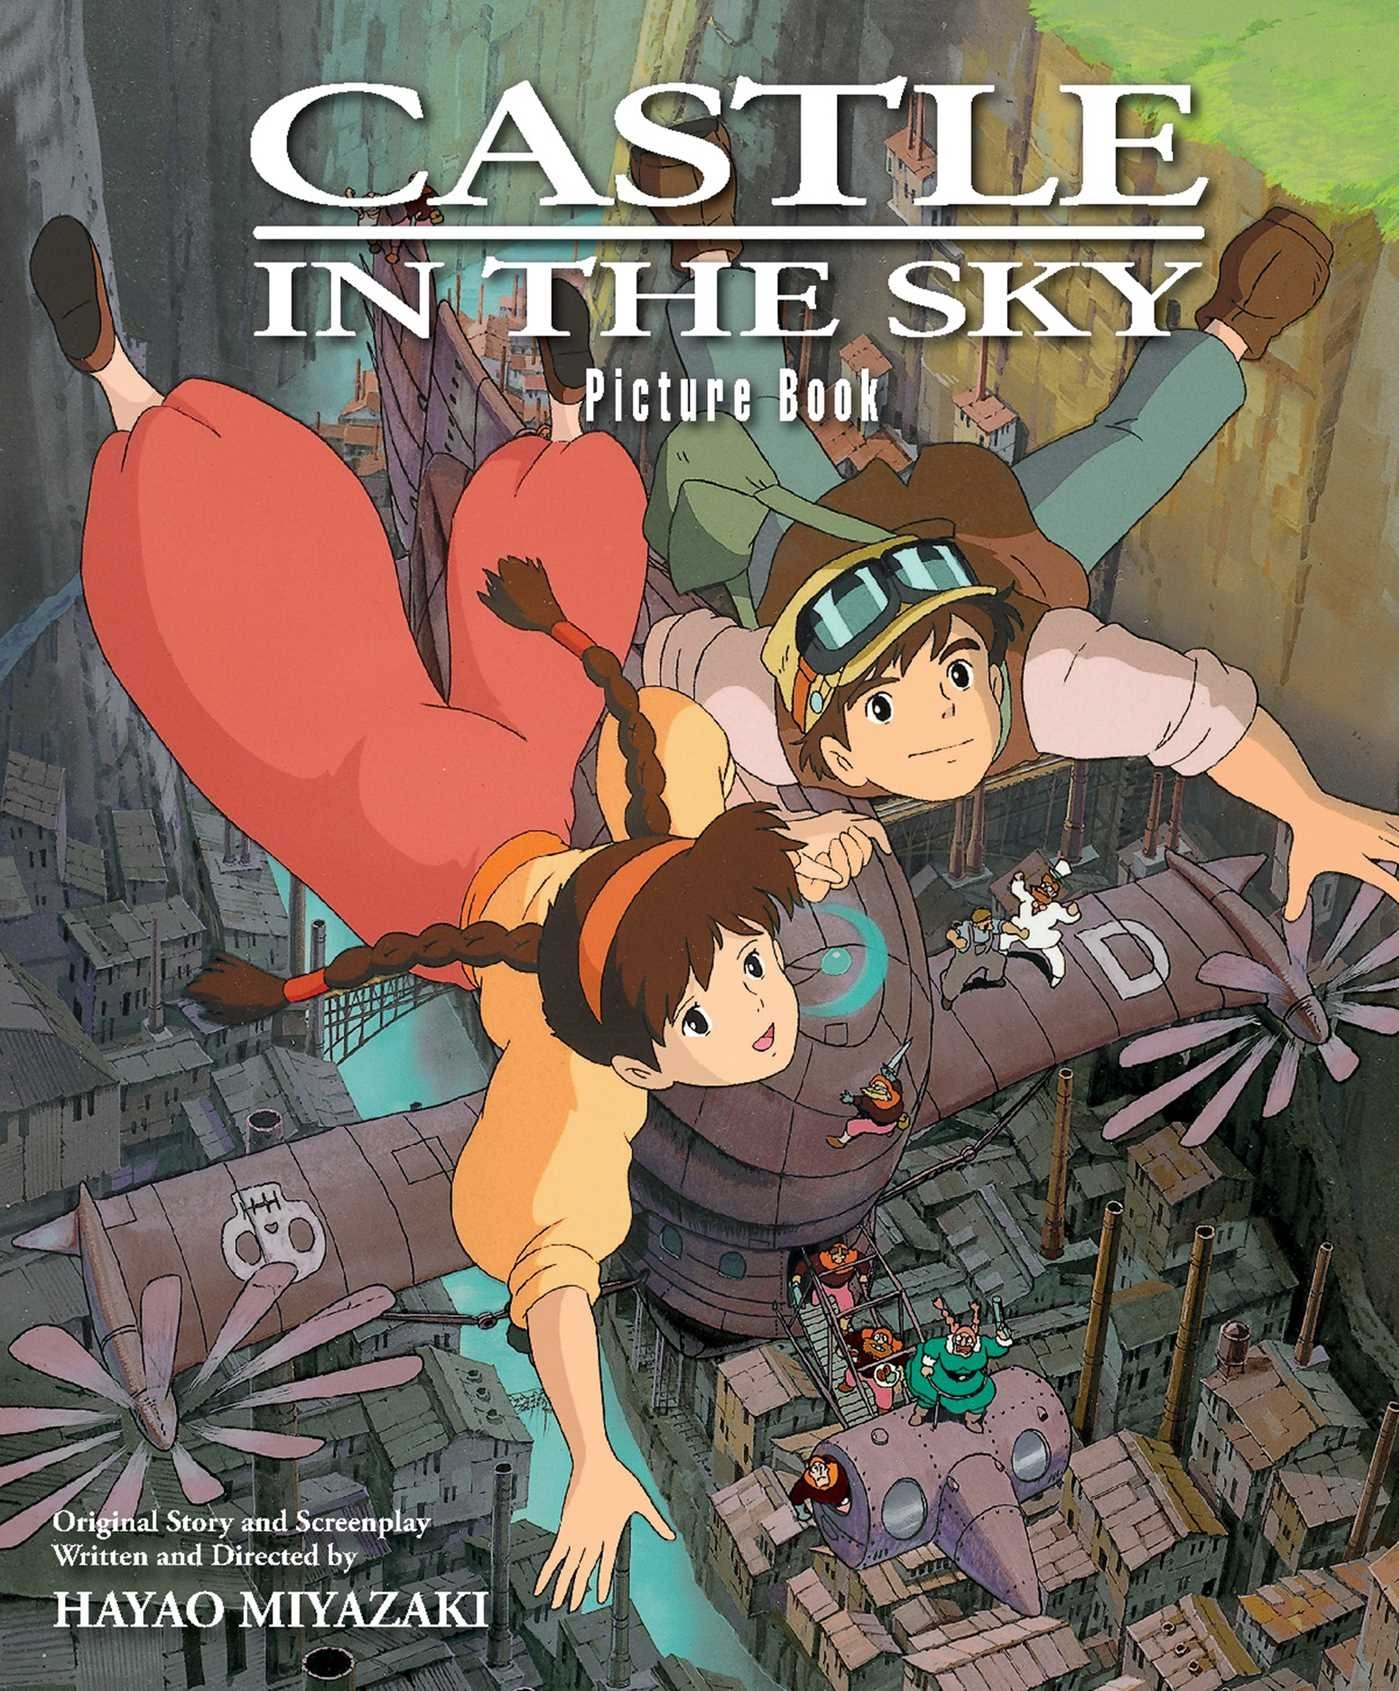 Castle in the Sky Picture Book by Hayao Miyazaki